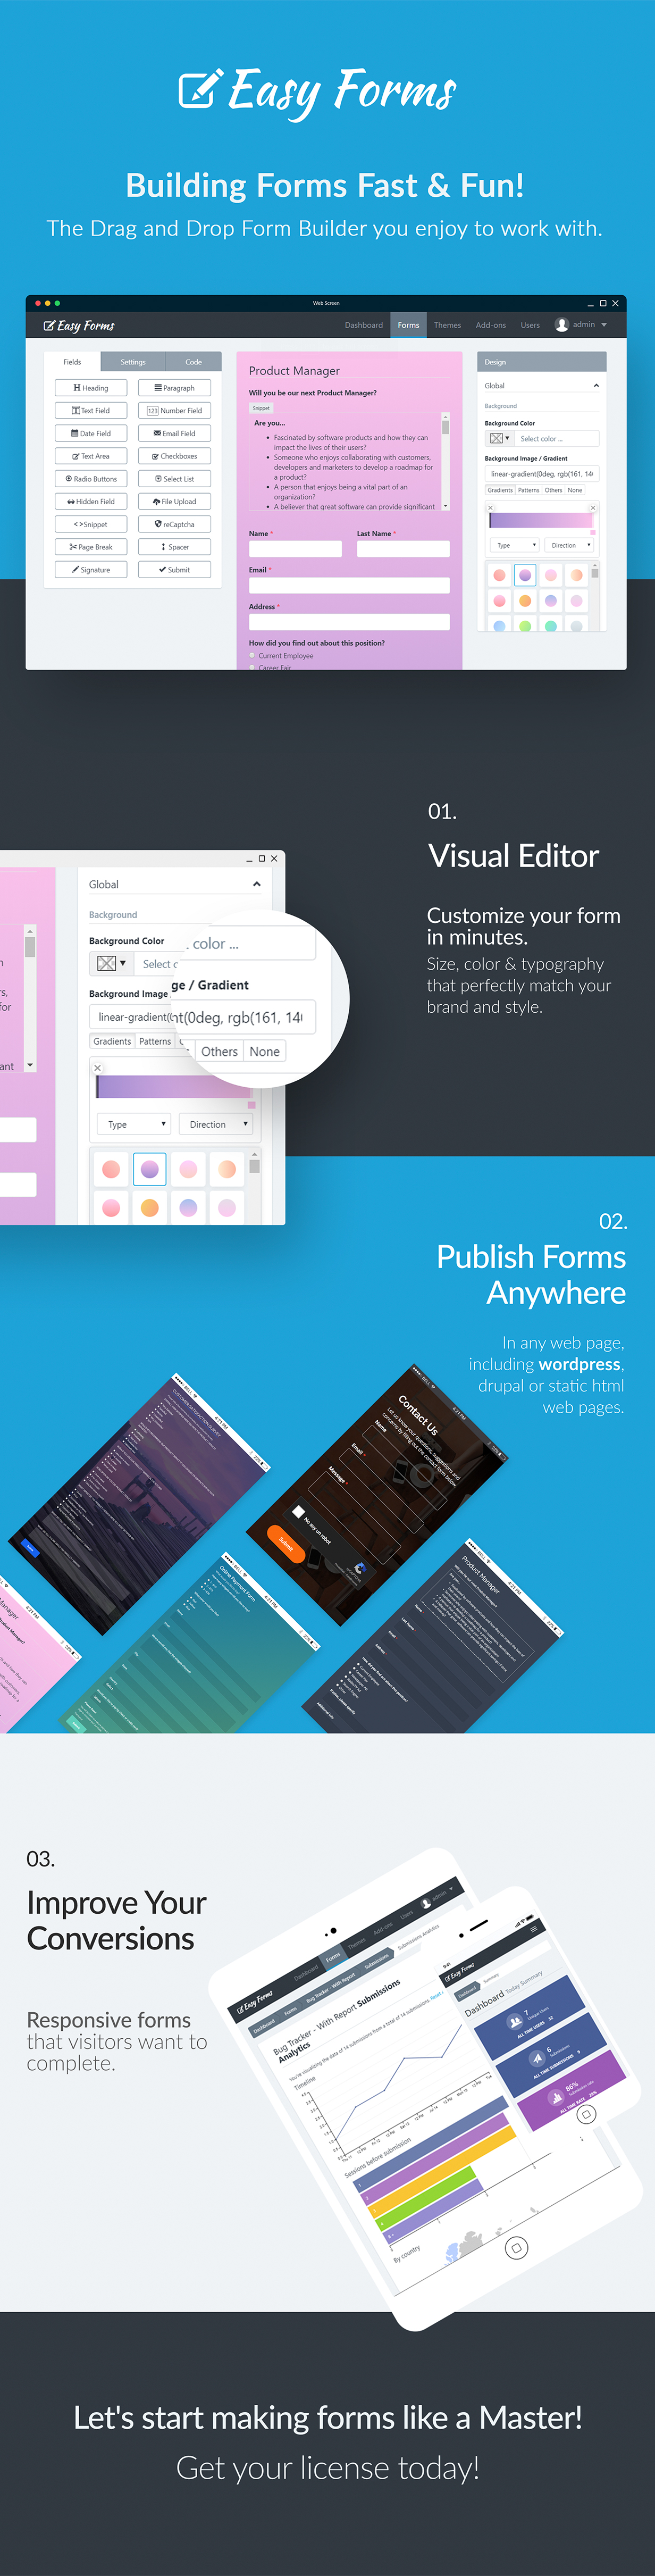 Easy Forms: Advanced Form Builder and Manager - 1